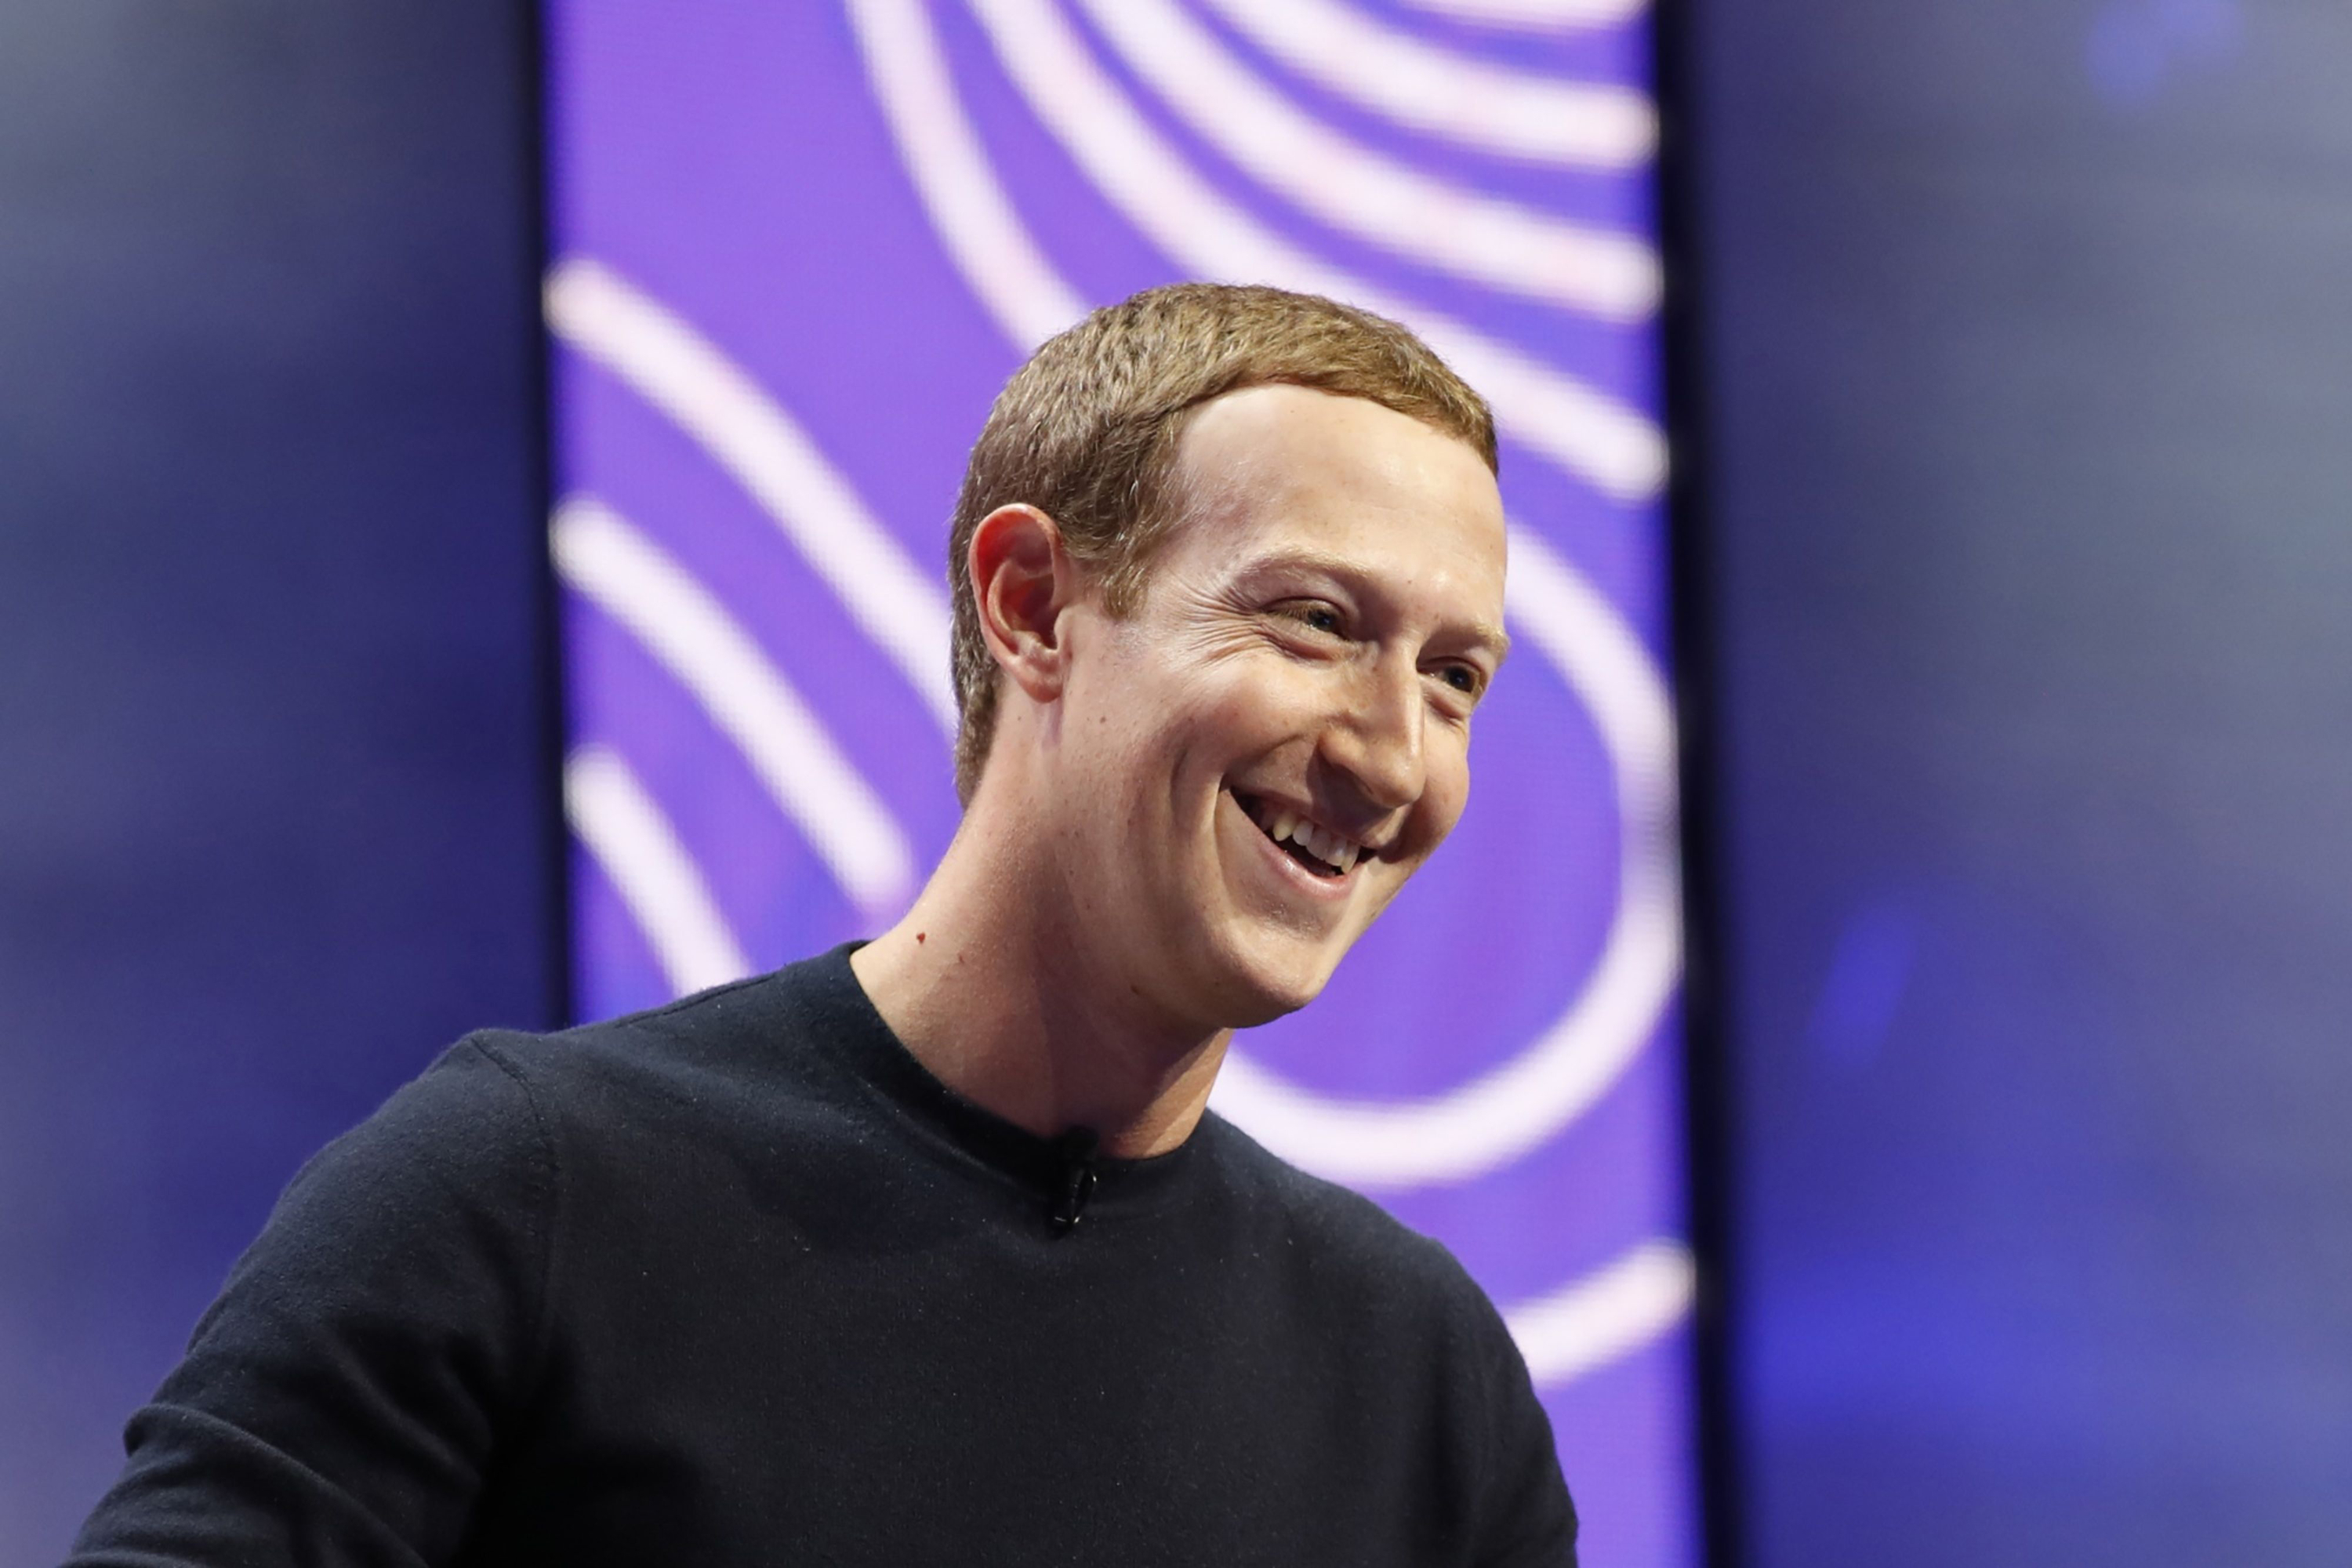 Facebook advertising grew to $17.4 billion in first quarter, but sector has softened